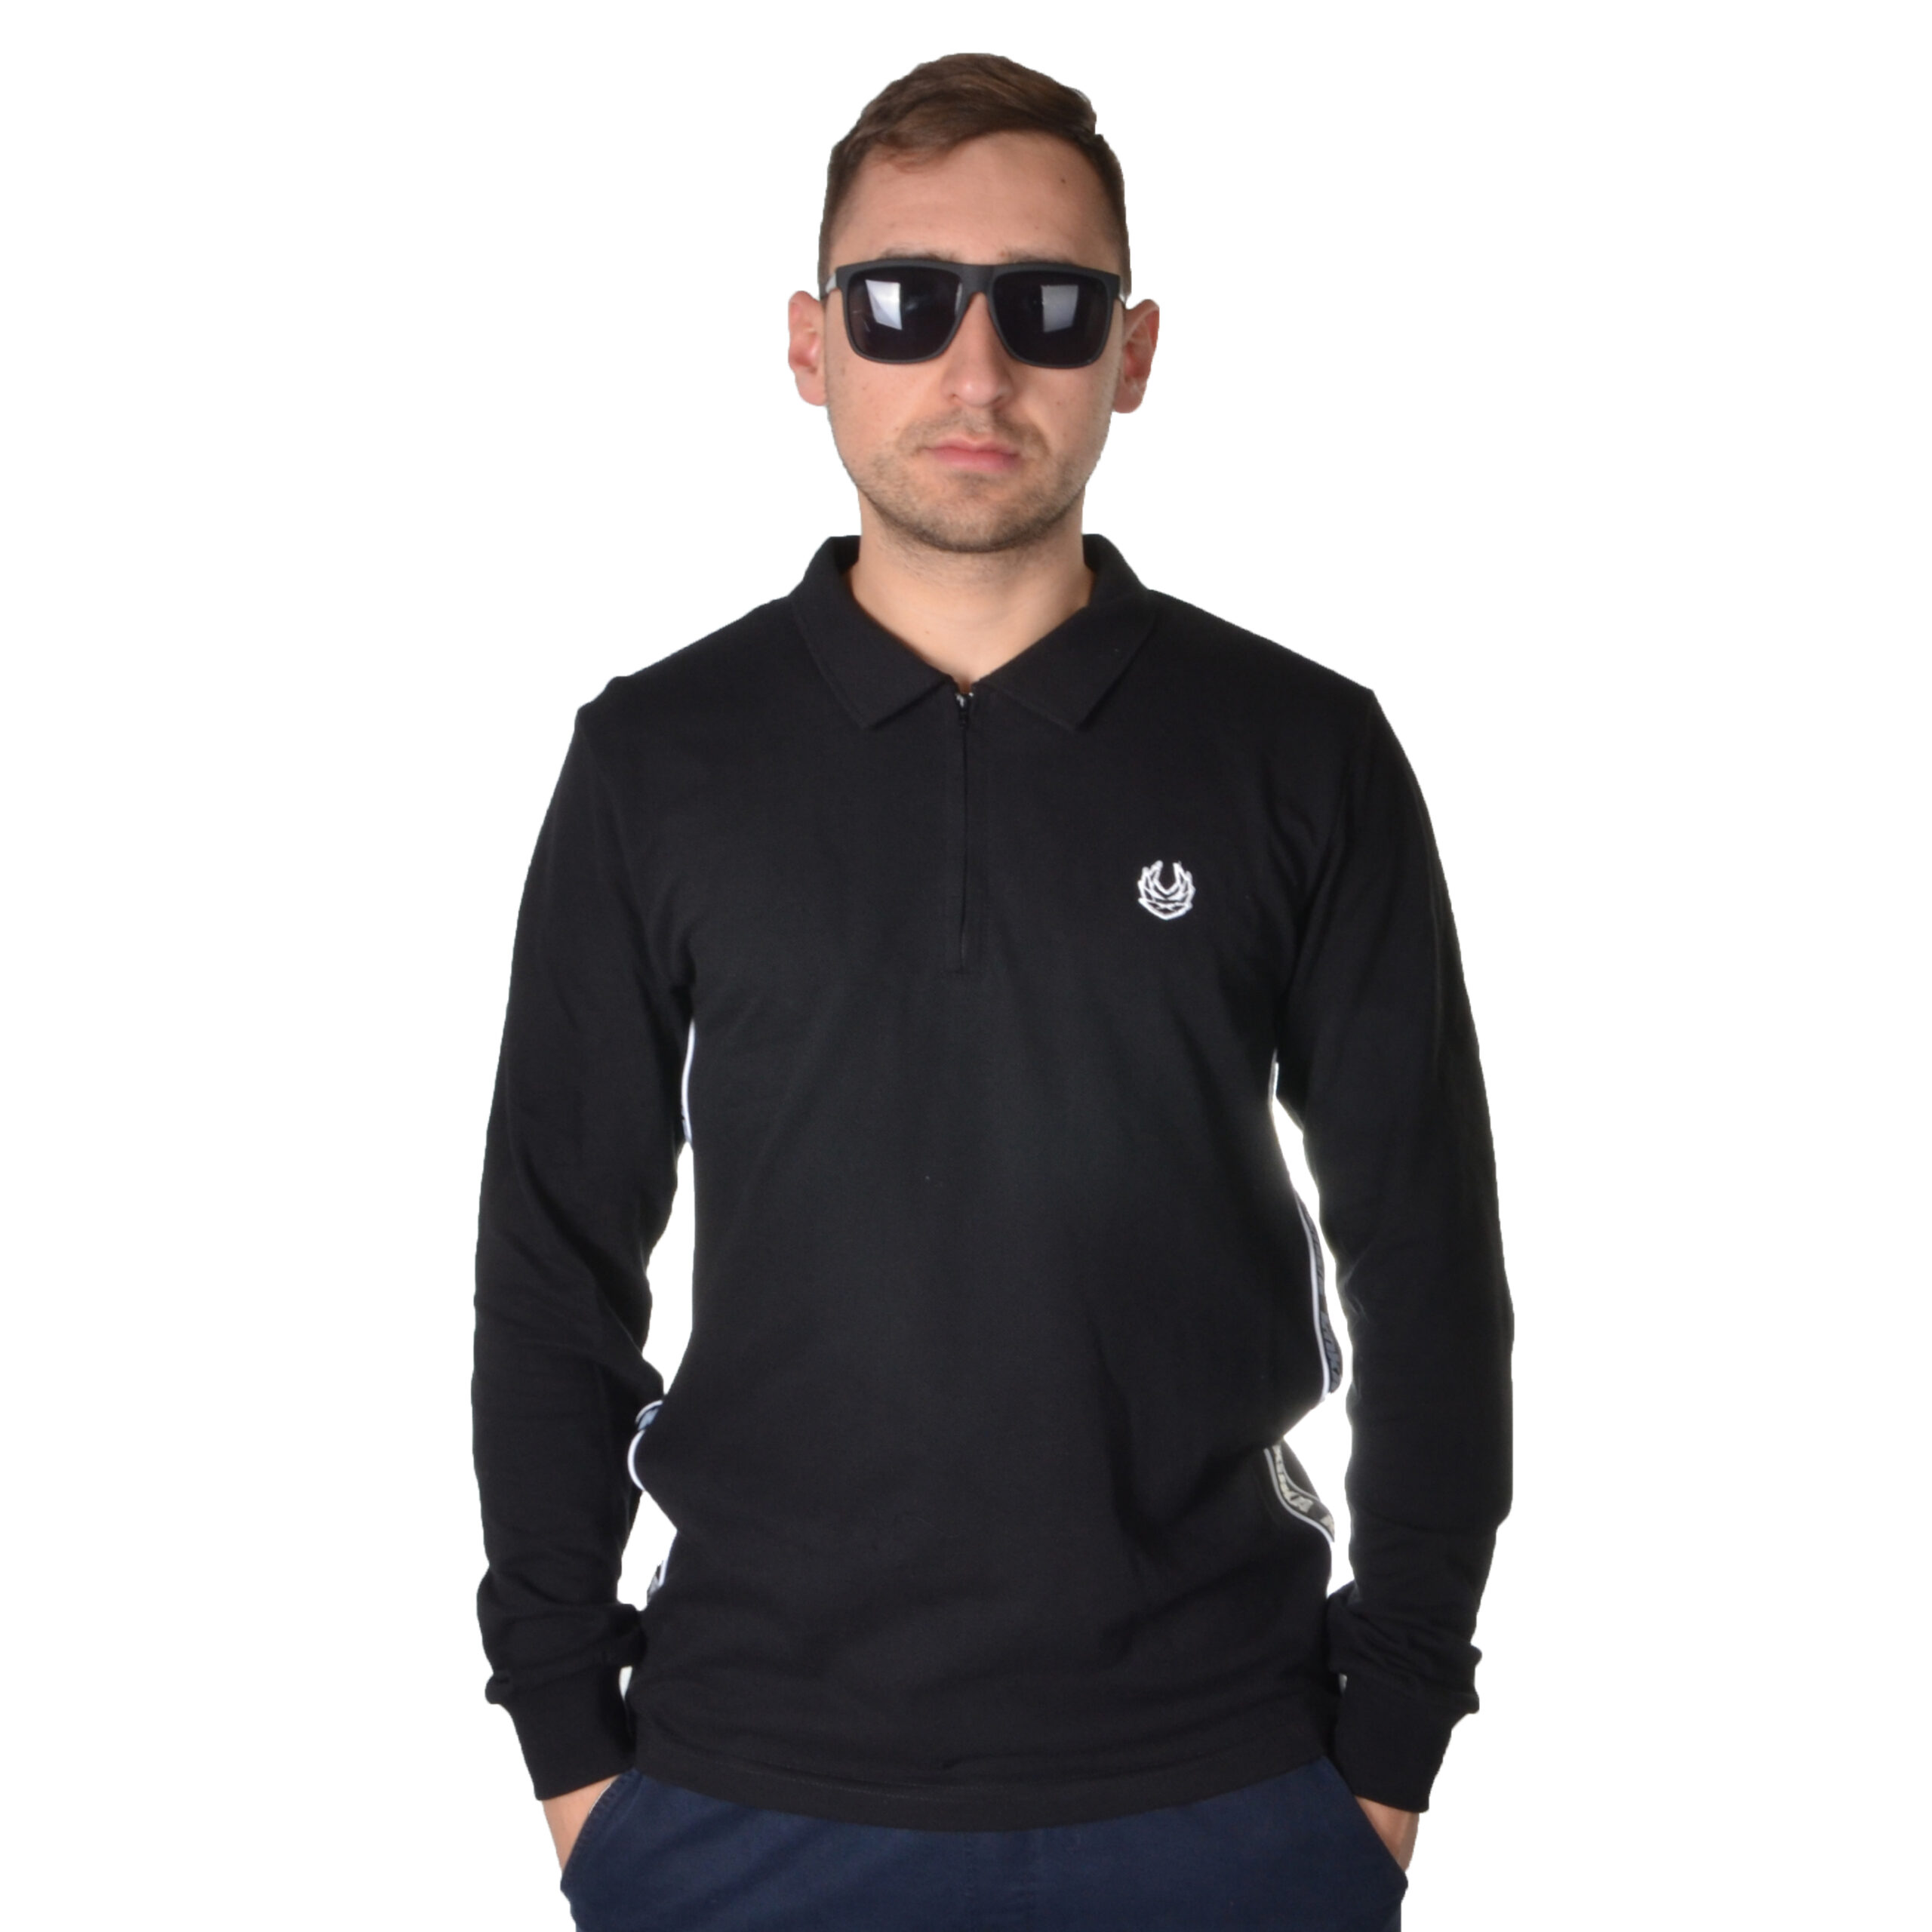 KOKA LONGSLEEVE ZIPPER POLO TAPE CZARNY